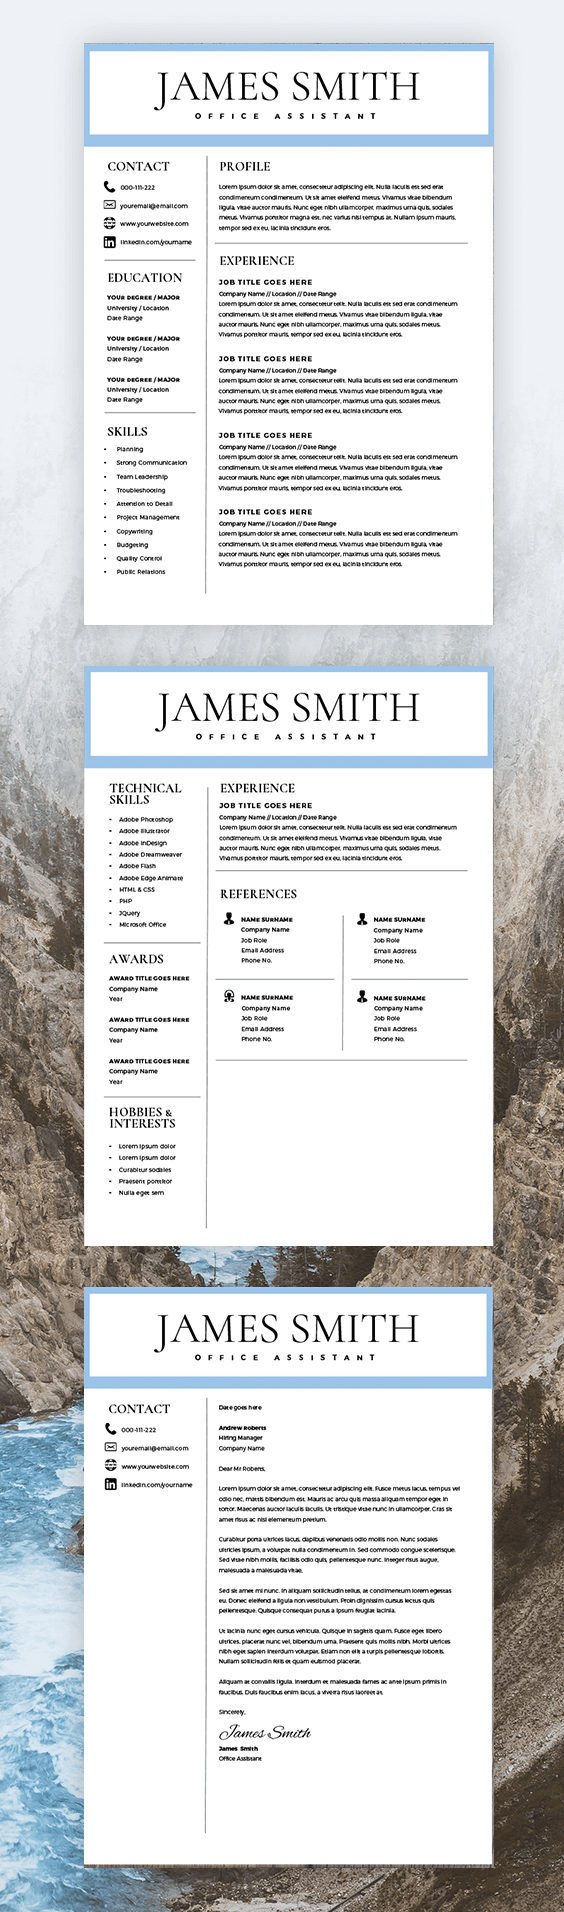 resume template for men writer resume template for word pages 2 pages resume cover letter curriculum vitae instant download cv